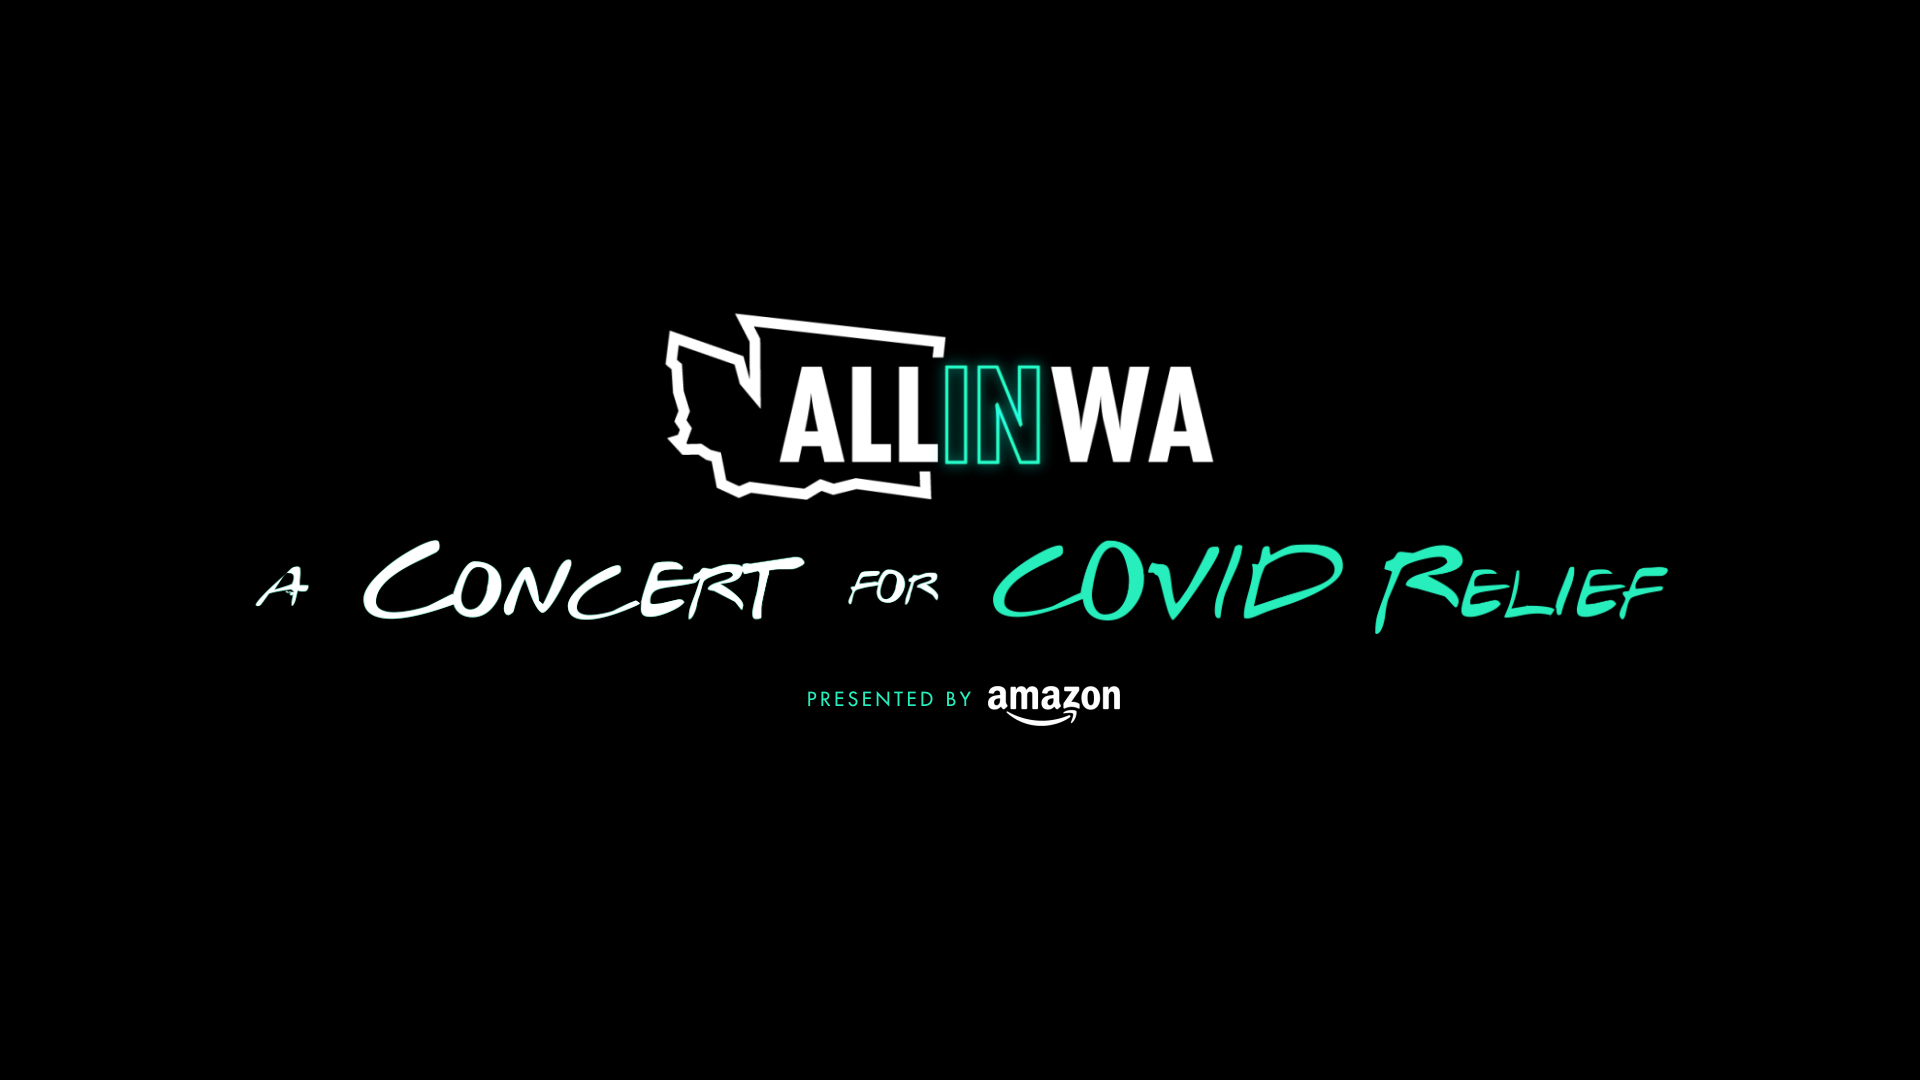 All In WA: A Concert for Covid-19 Relief - presented by Amazon